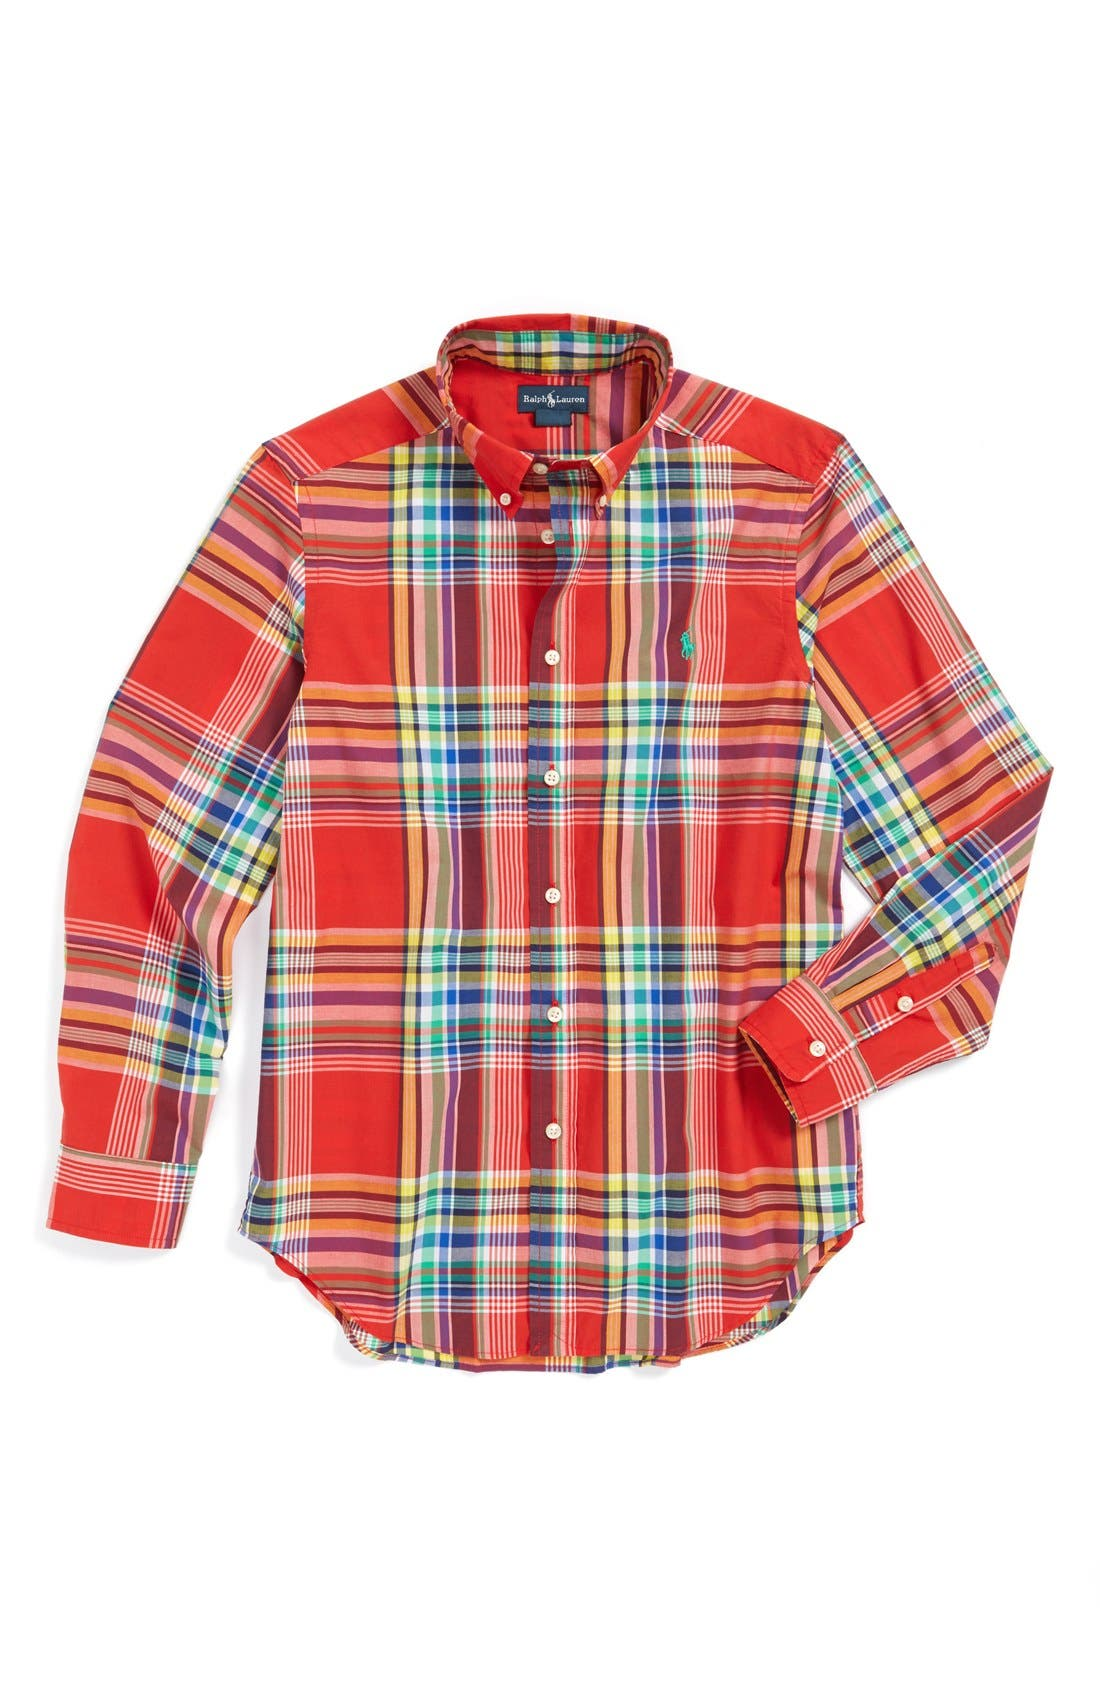 Alternate Image 1 Selected - Ralph Lauren Plaid Shirt (Little Boys)